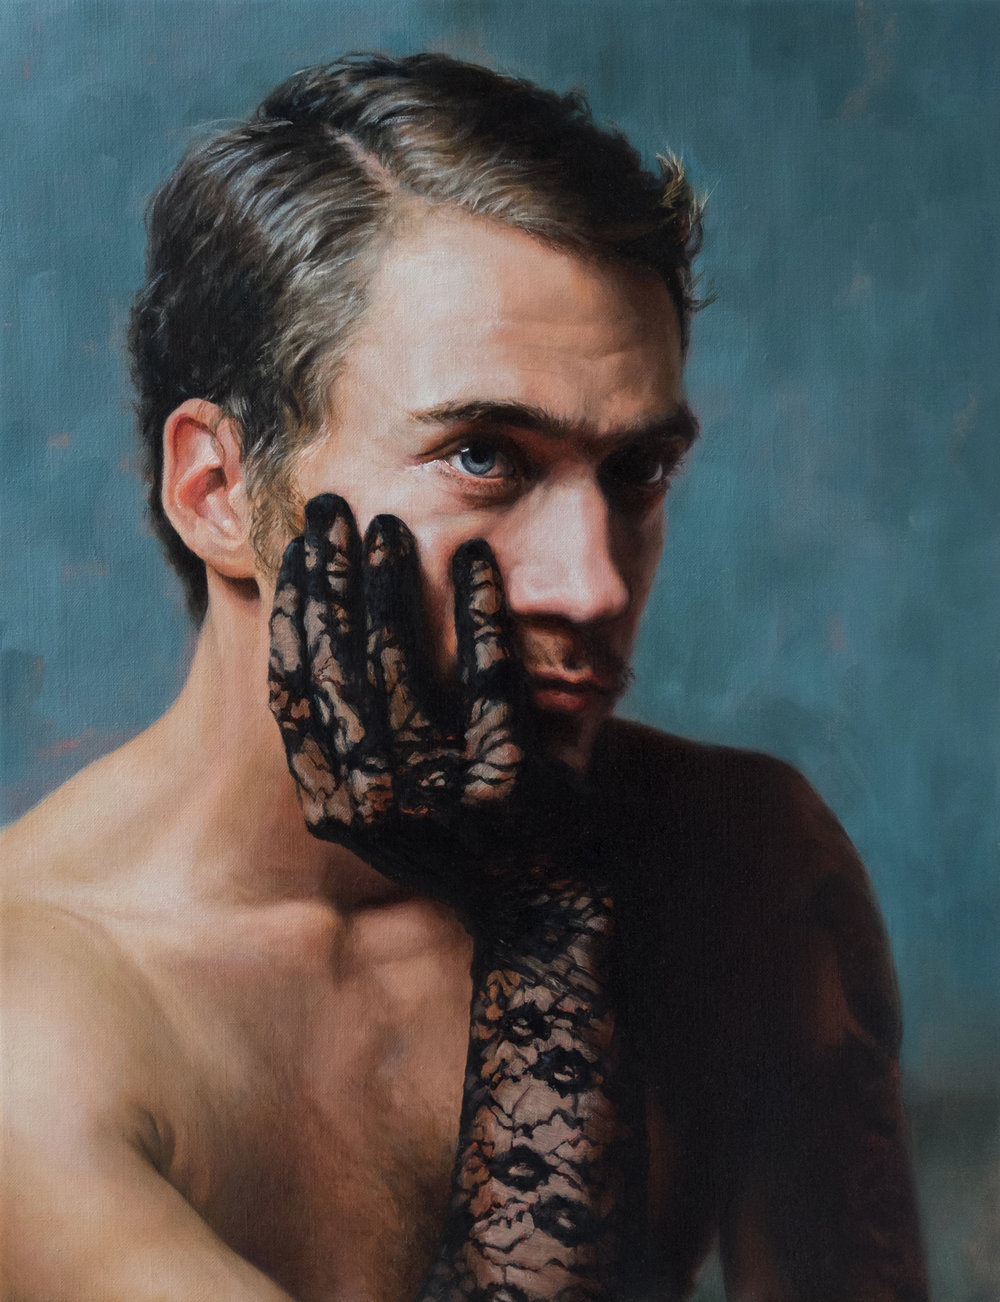 Alessandro Tomassetti   |   The Big Time   |  Oil on Linen  |  25 ½ x 19 ¾ inches or 64 ¾ x 50 cm